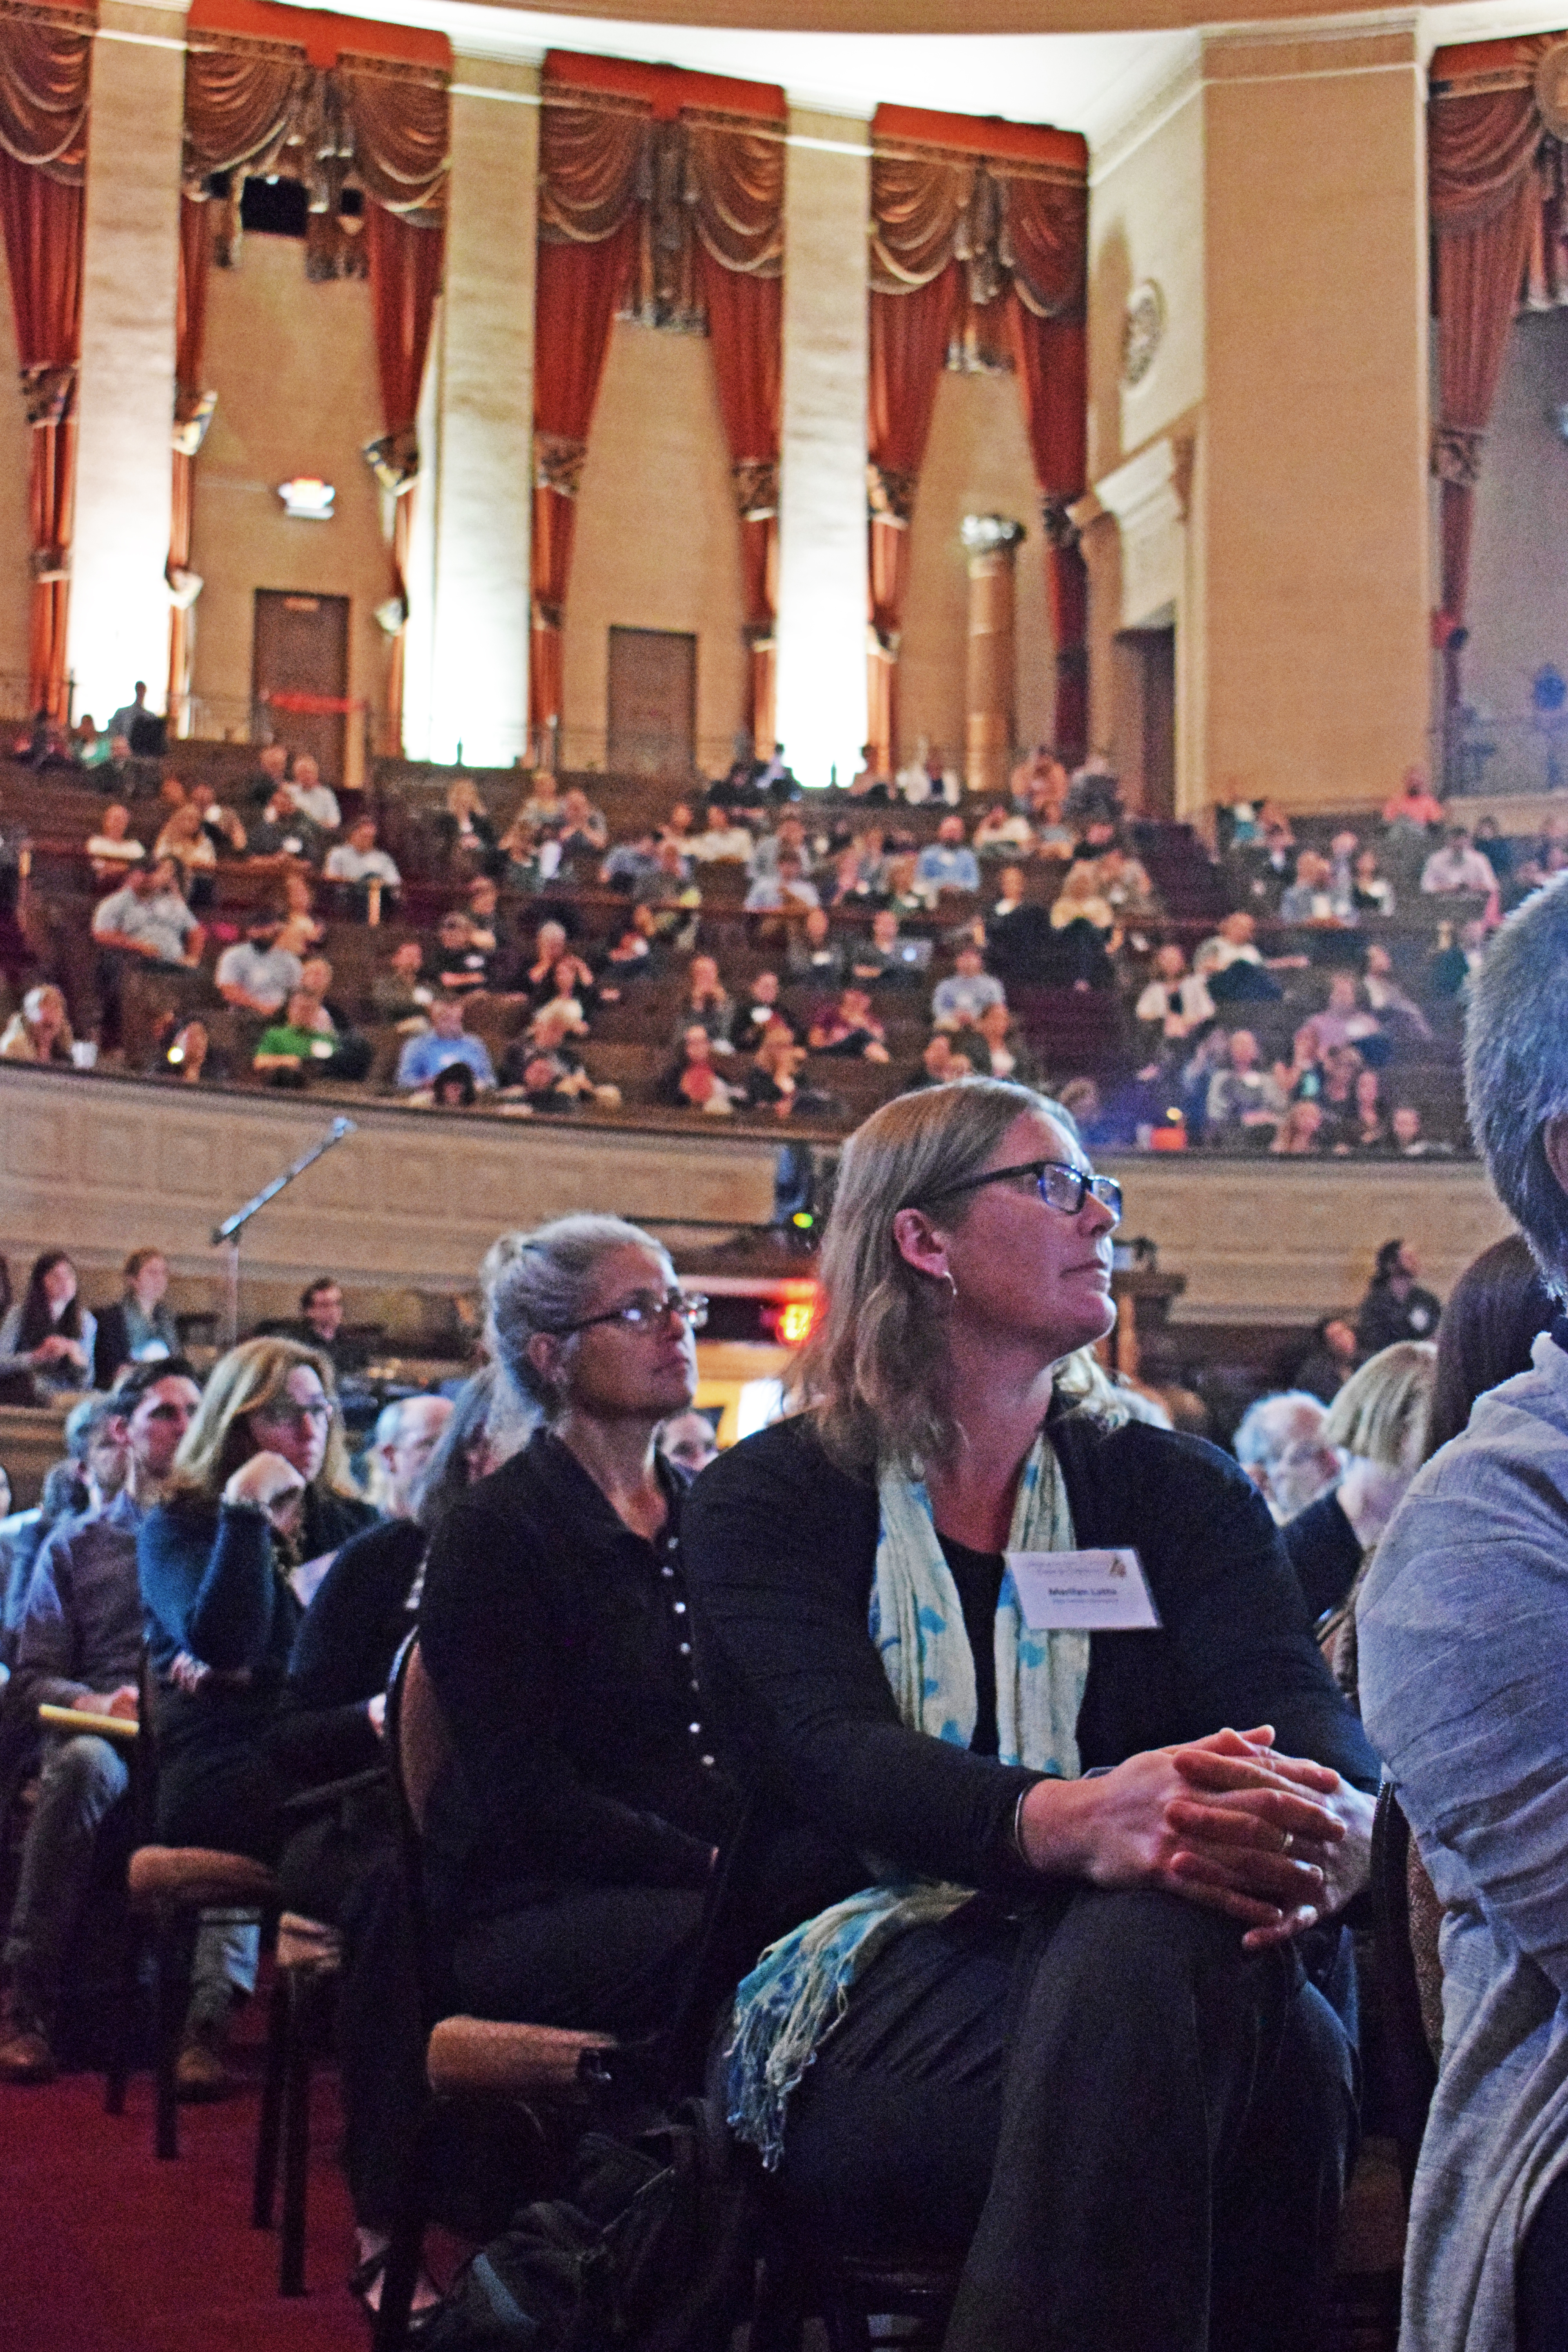 Woman sitting in large auditorium for conference plenary session